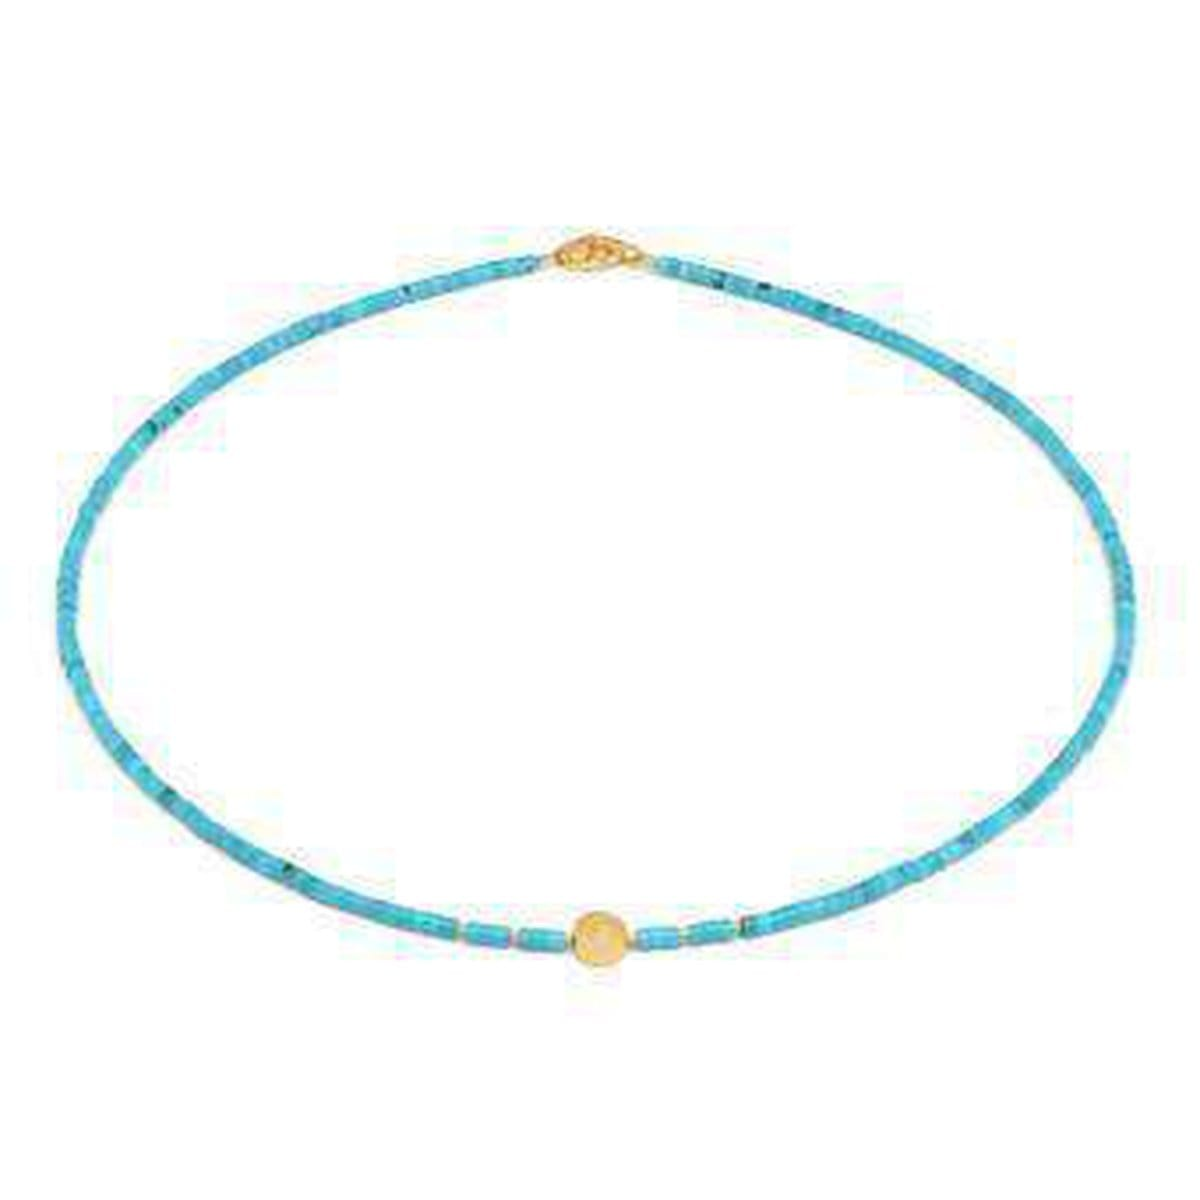 Kiria Turquoise Necklace - 80920256-Bernd Wolf-Renee Taylor Gallery